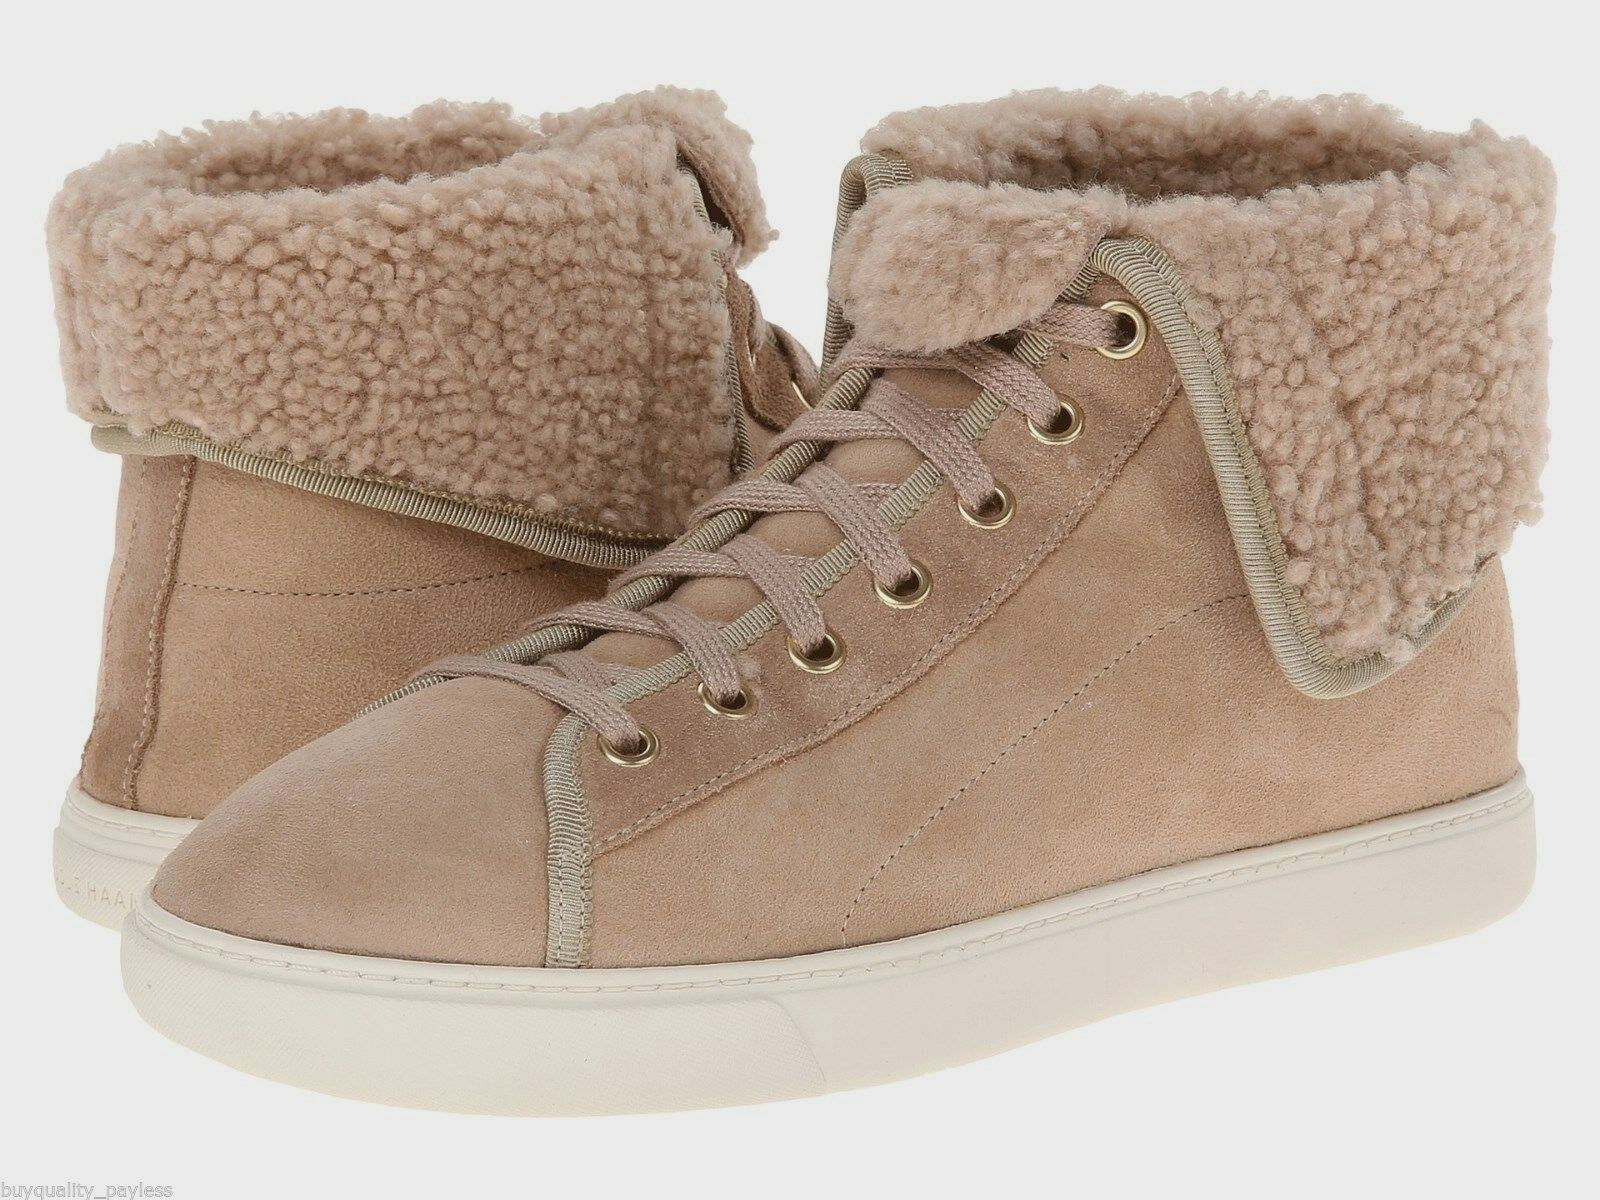 Cole Haan Raven Hightop Sneakers Shearling Womens Maple Sugar 8.5 NEW IN BOX